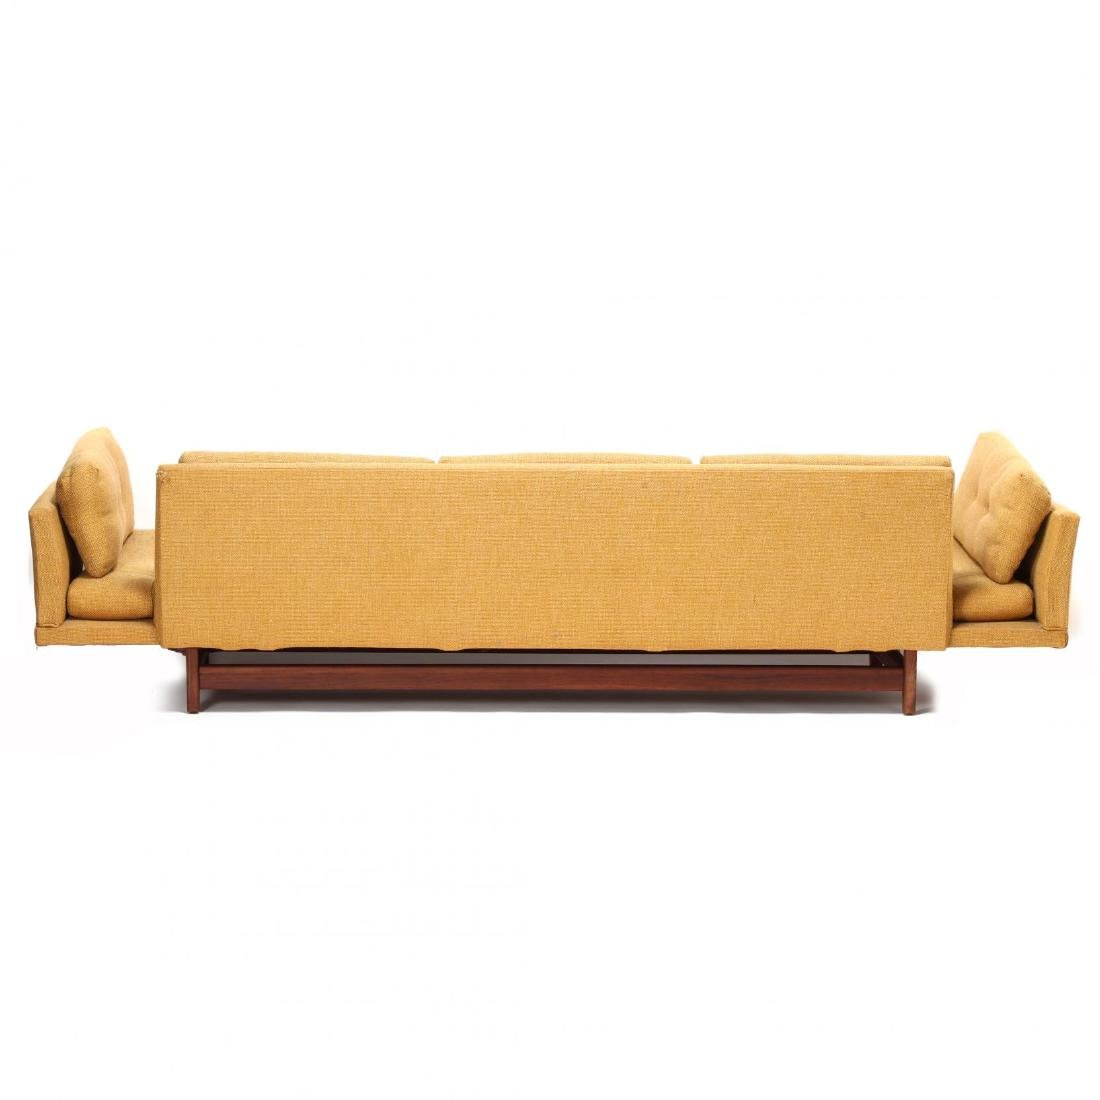 Adrian Persall, Streamlined Modernist Sofa - 5